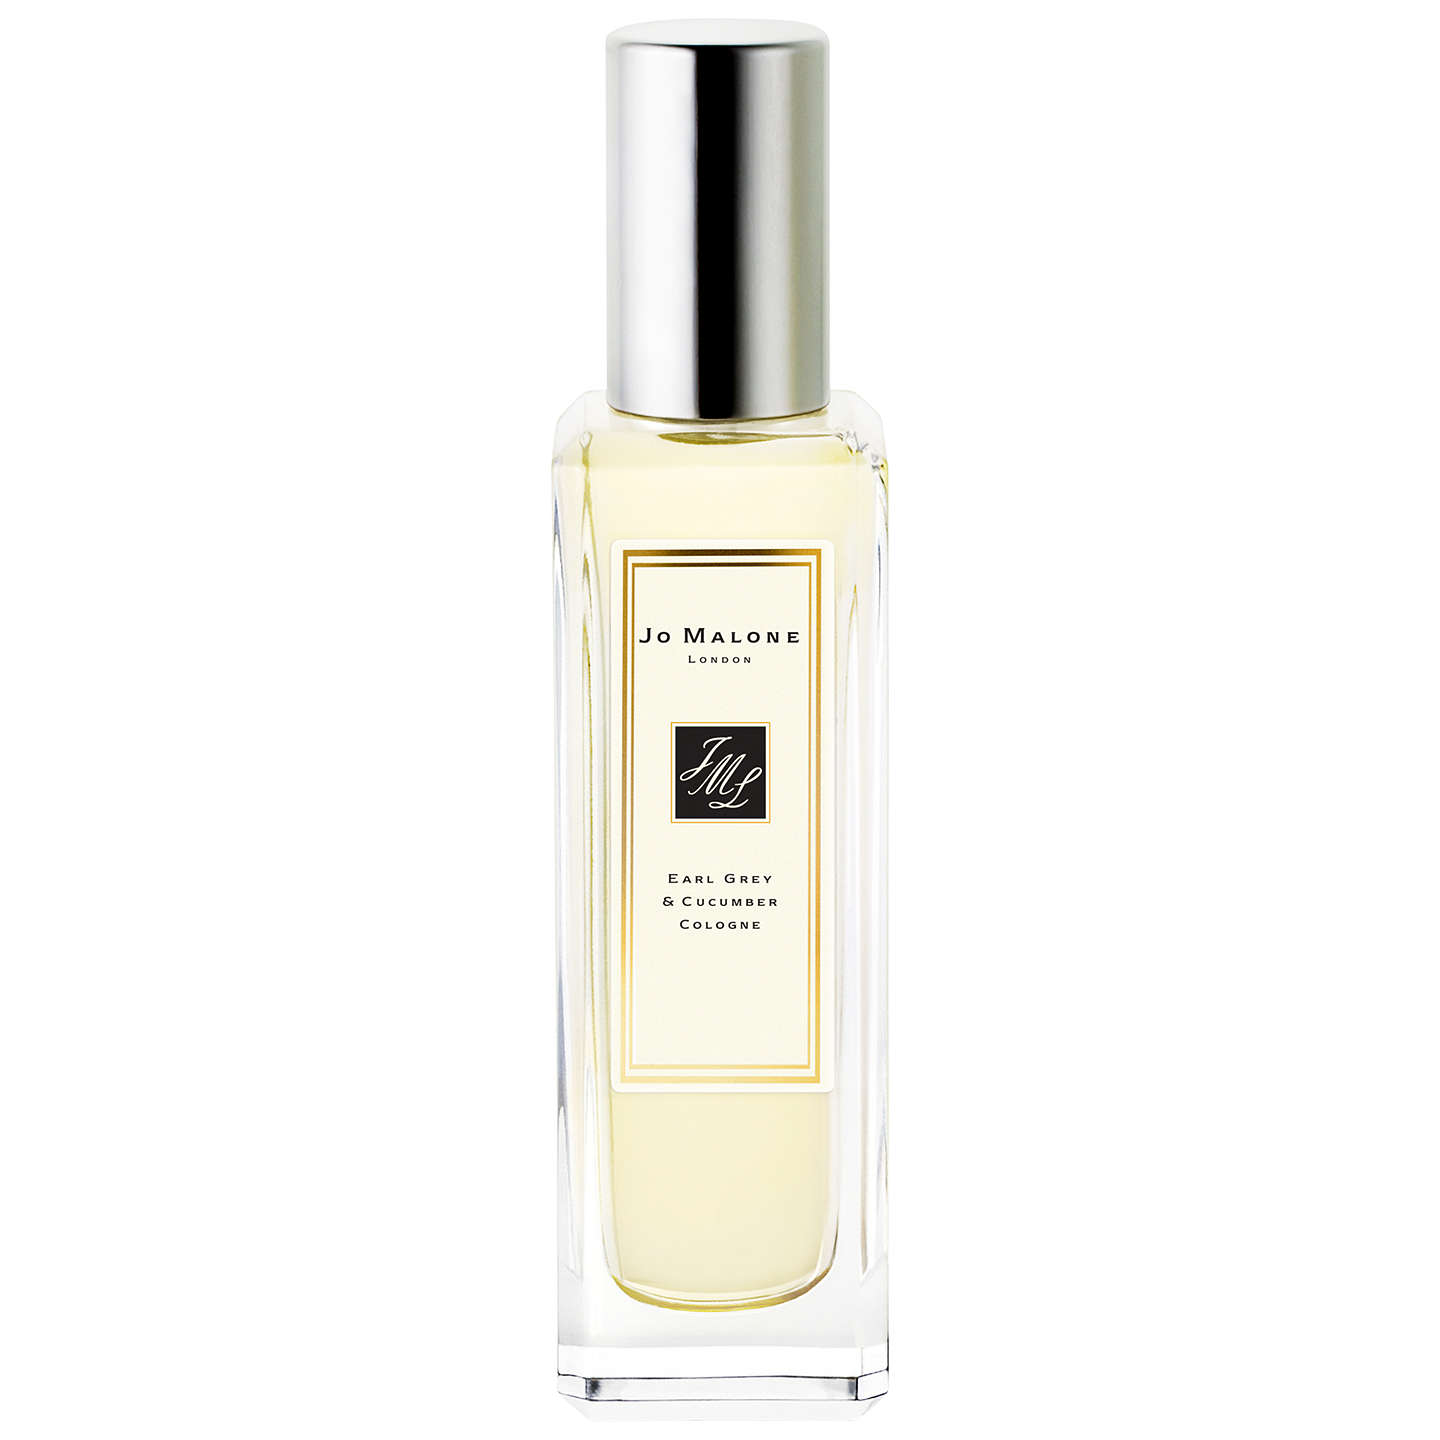 BuyJo Malone London Earl Grey & Cucumber Cologne, 30ml Online at johnlewis.com